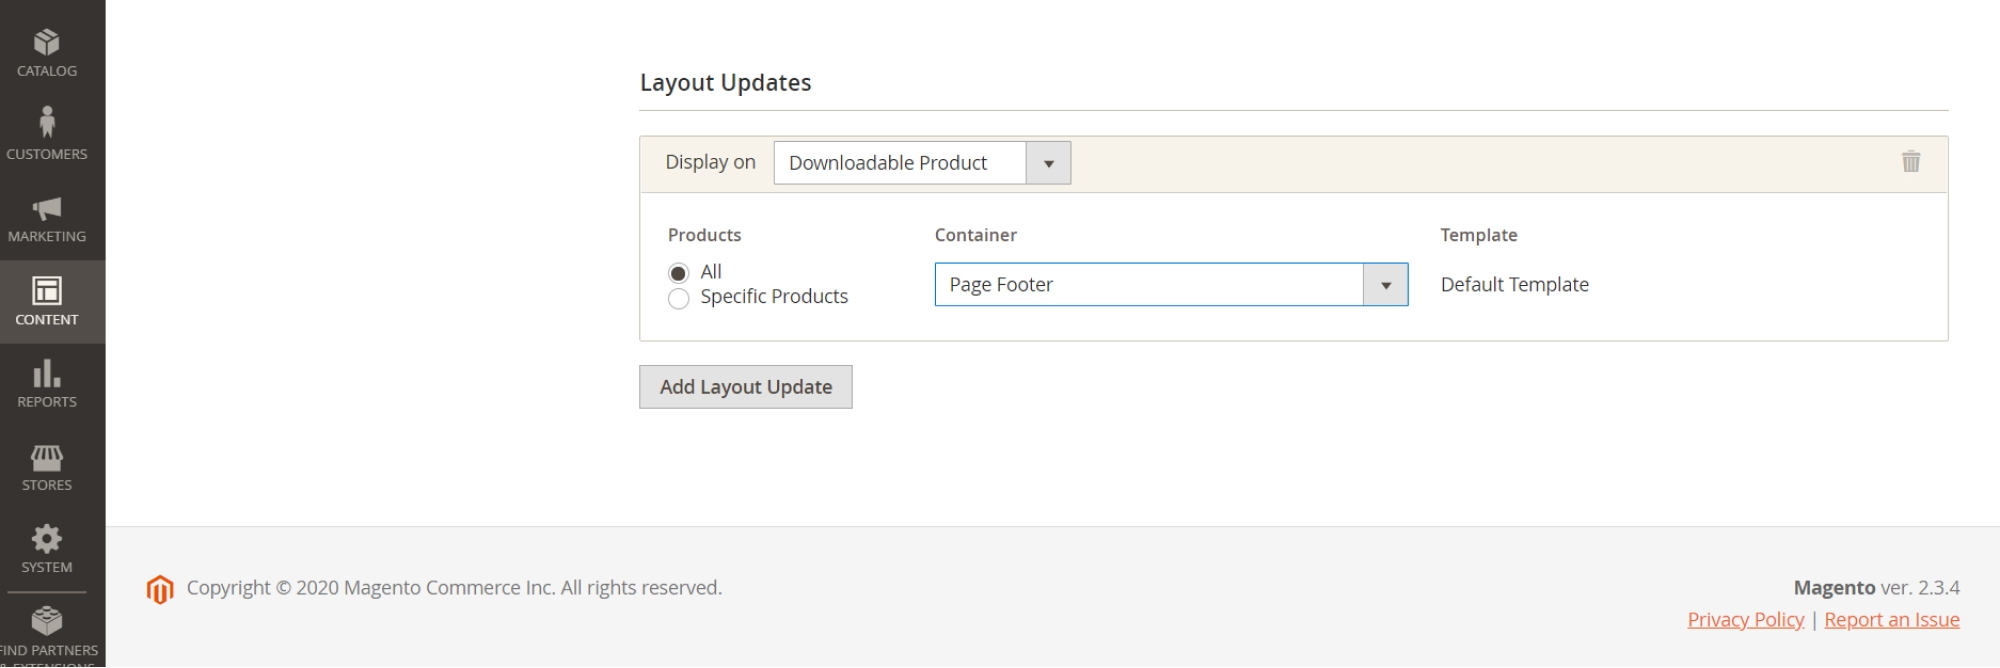 Configure Layout Updates